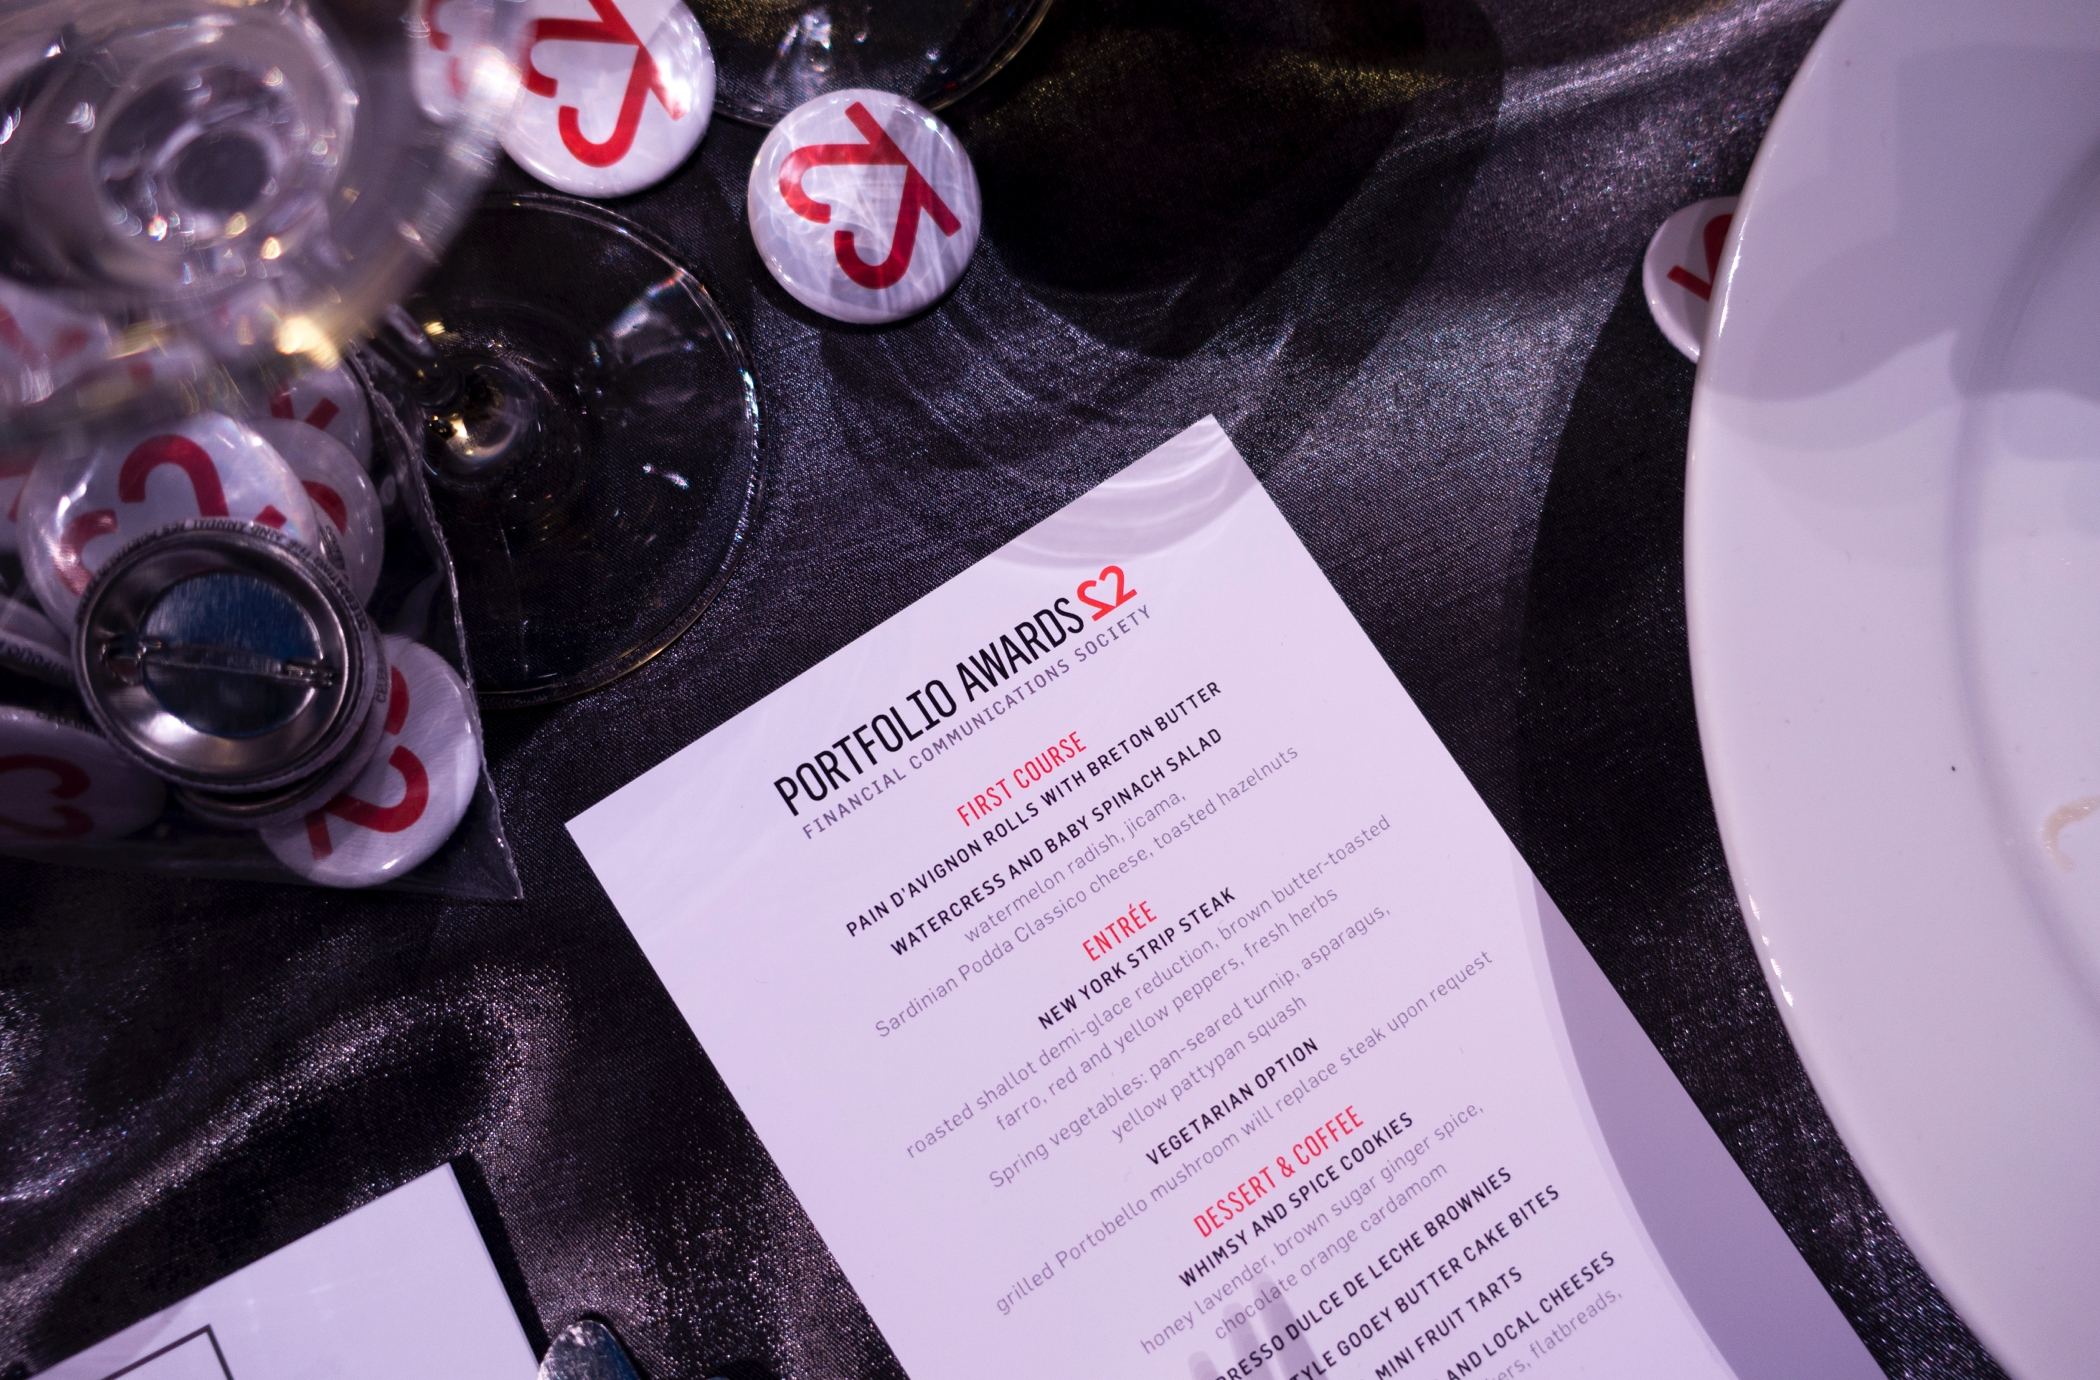 Financial Communications Society 22nd Portfolio Awards menu card on a table with several event logo buttons.